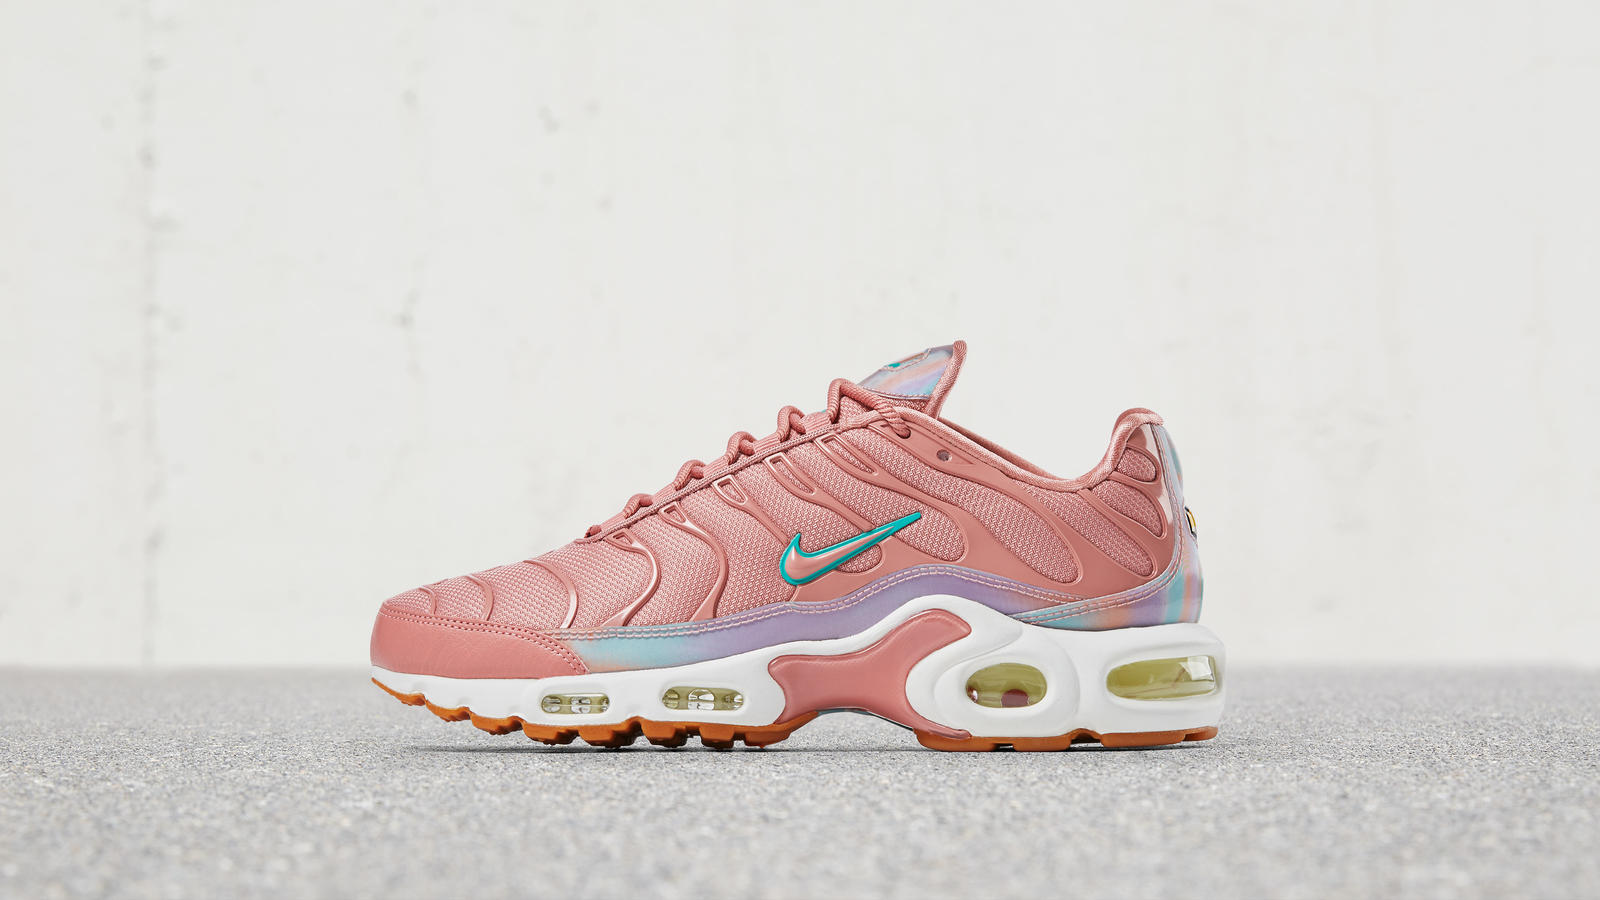 Nike Air Max Plus 97 / Rose Réduction avec mastercard Xd7Eju